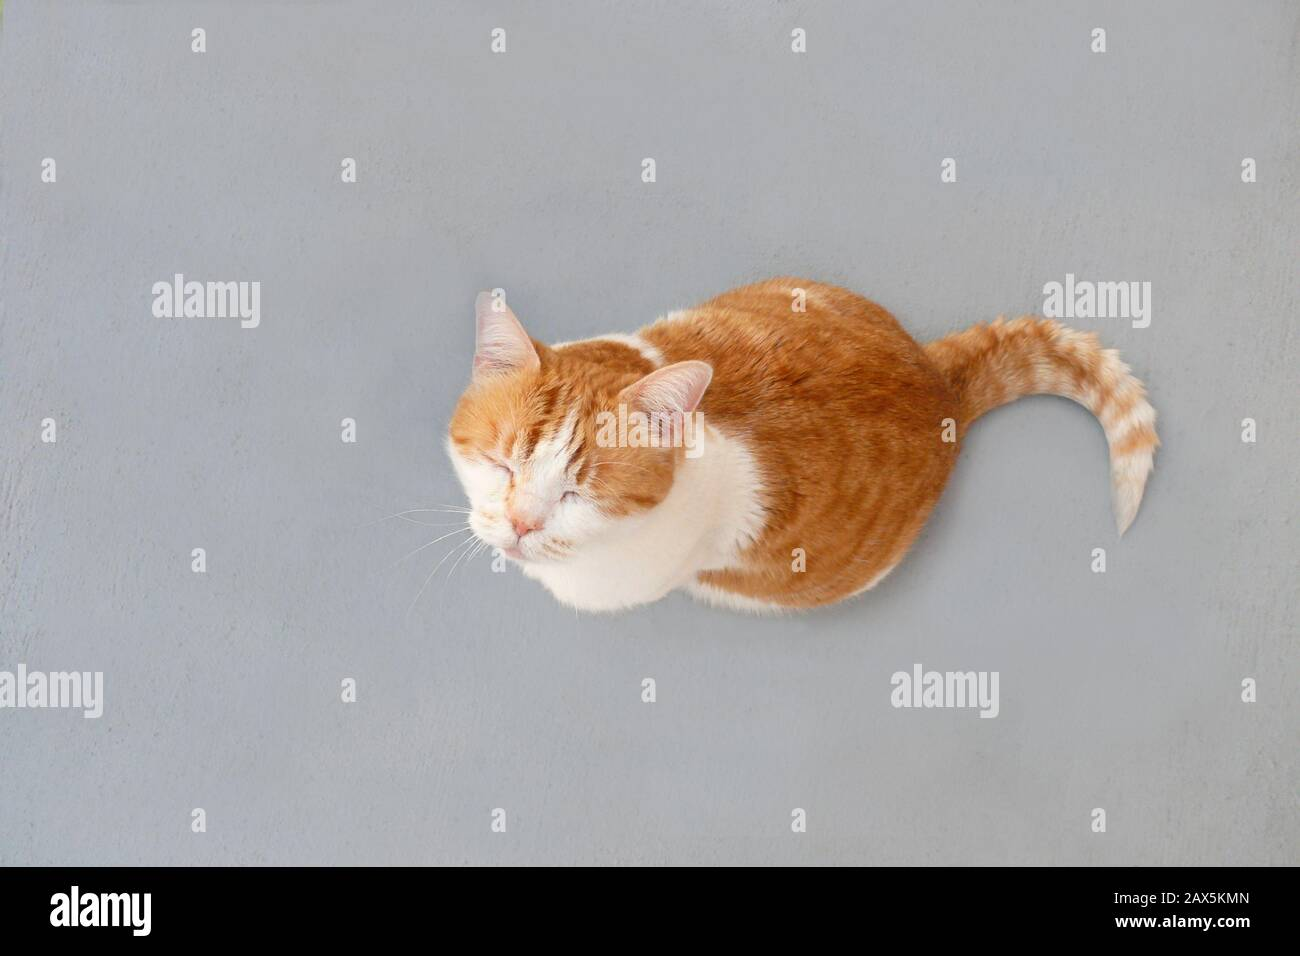 Cute orange and white tabby cat looking up with eyes closed. Looking down at an orange and white domestic cat on a grey textured background. Stock Photo